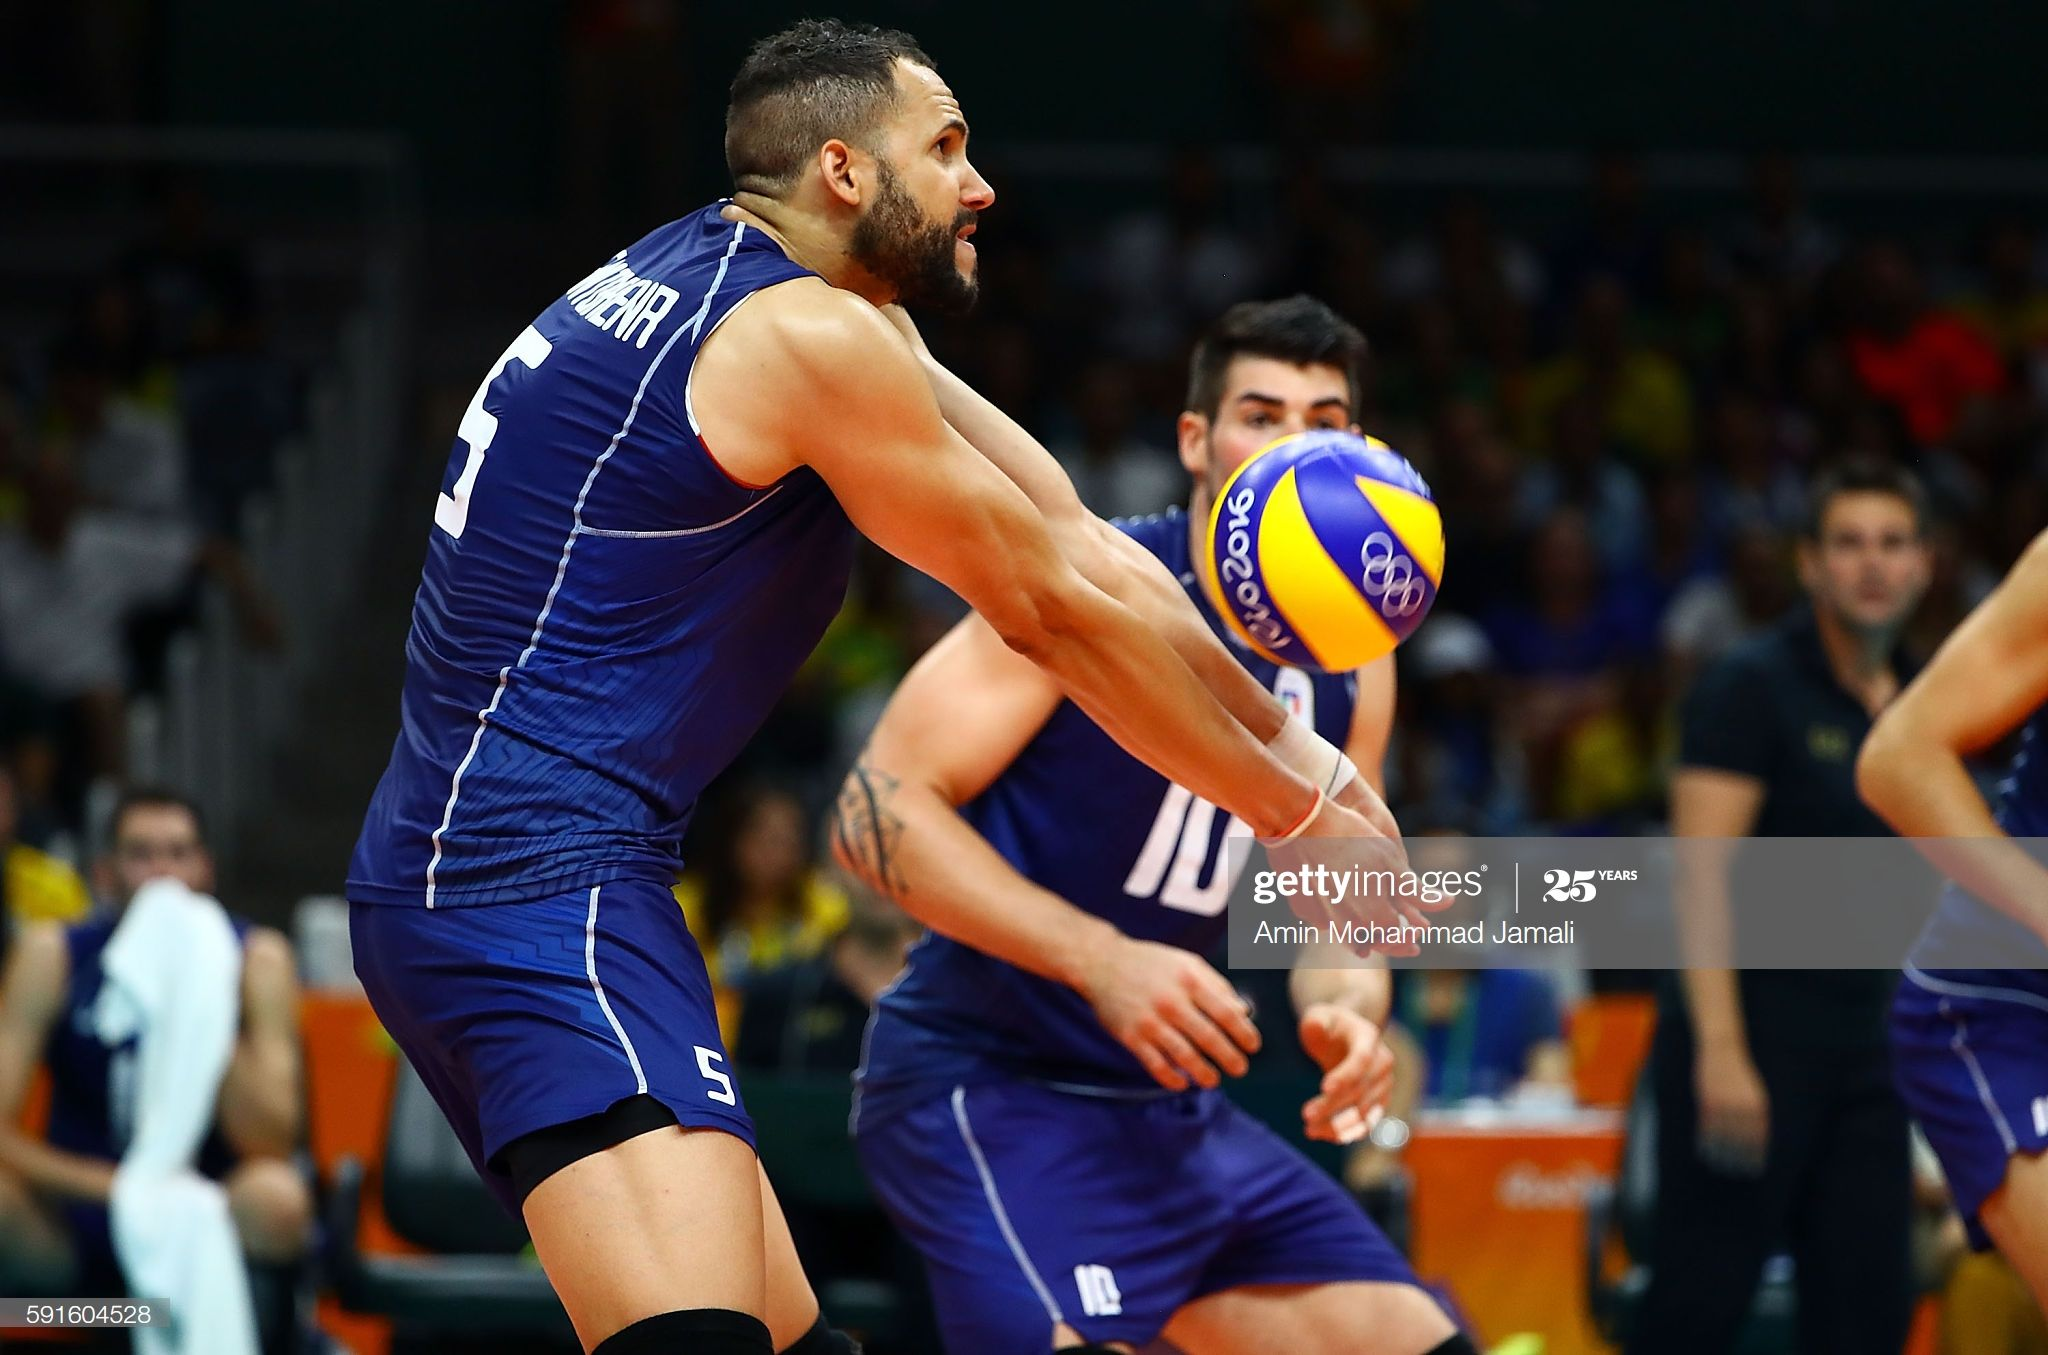 Osmany Juantorena Of Italy In Action Against Iran During The Men S In 2020 Olympics 2016 Rio Olympics 2016 Olympic Games